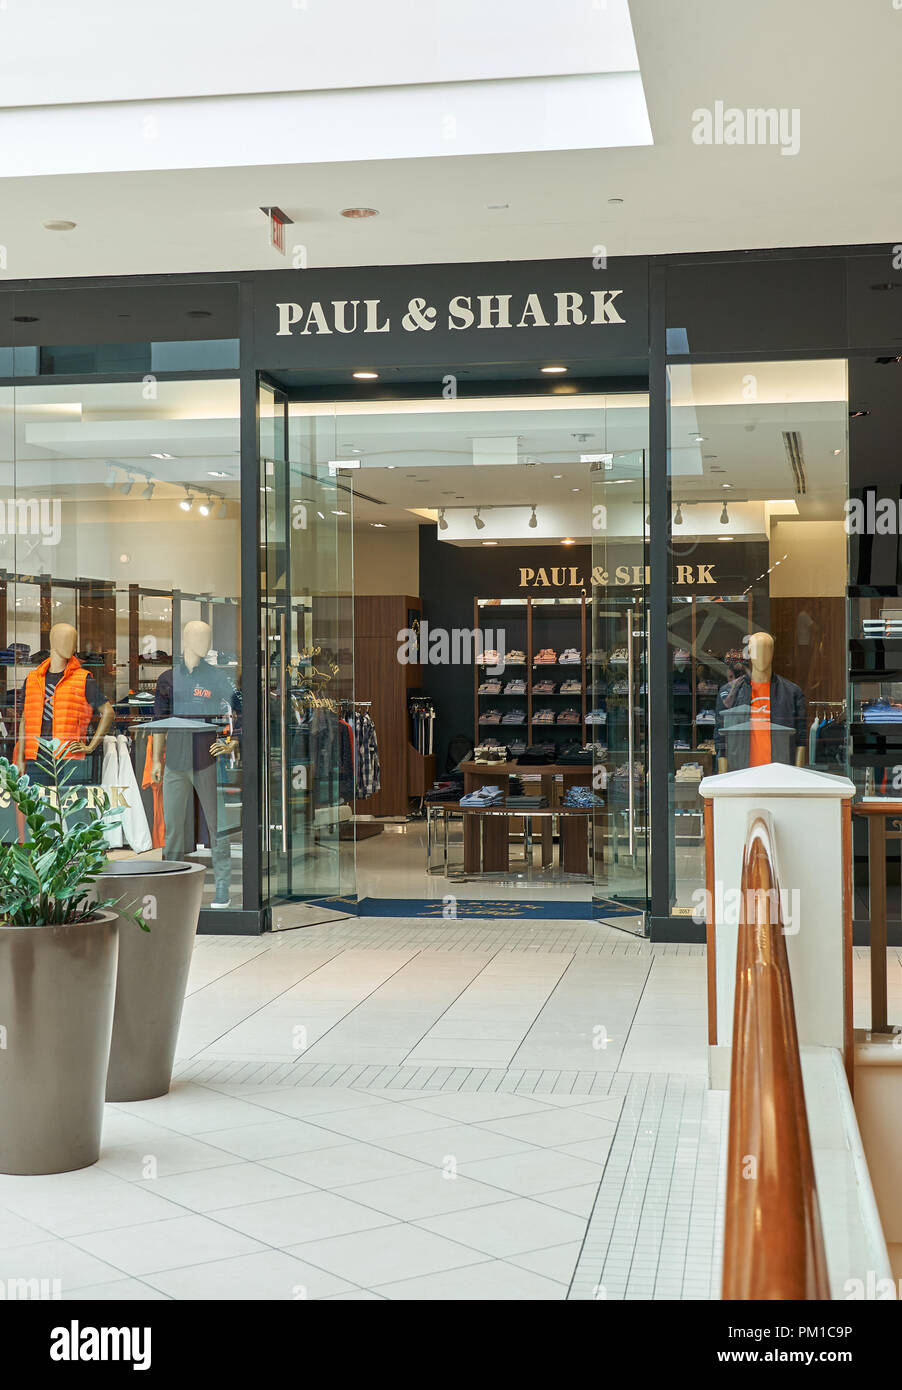 AVENTURA, USA - AUGUST 23, 2018: famous boutique in Aventura Mall. Paul and Shark is an Italian clothing brand founded by Paolo Dini Stock Photo